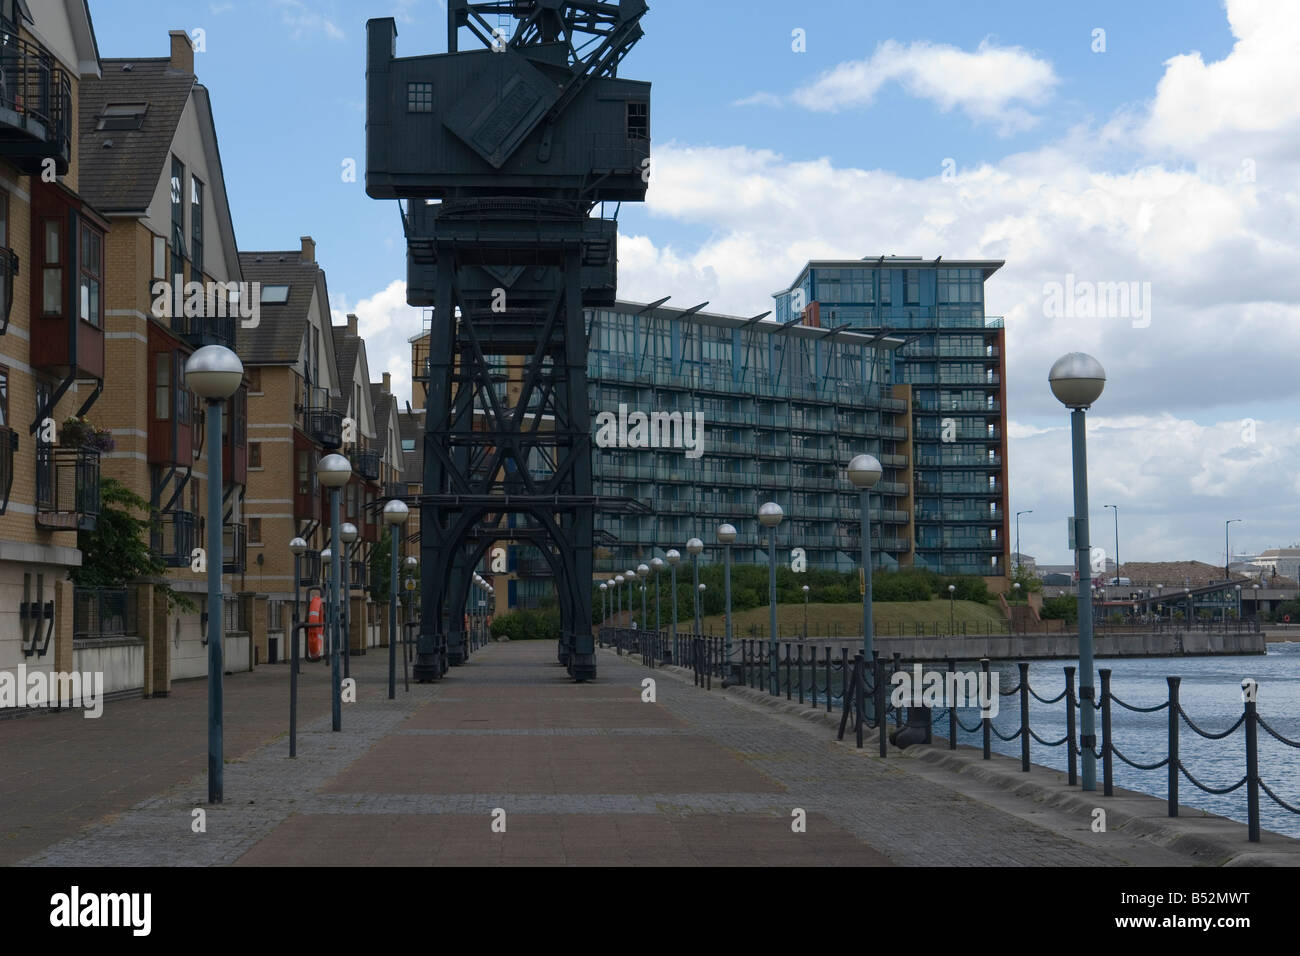 old cranes in front of the Britannia Village on the Royal Victoria Dock - Silvertown - East London - UK - Stock Image